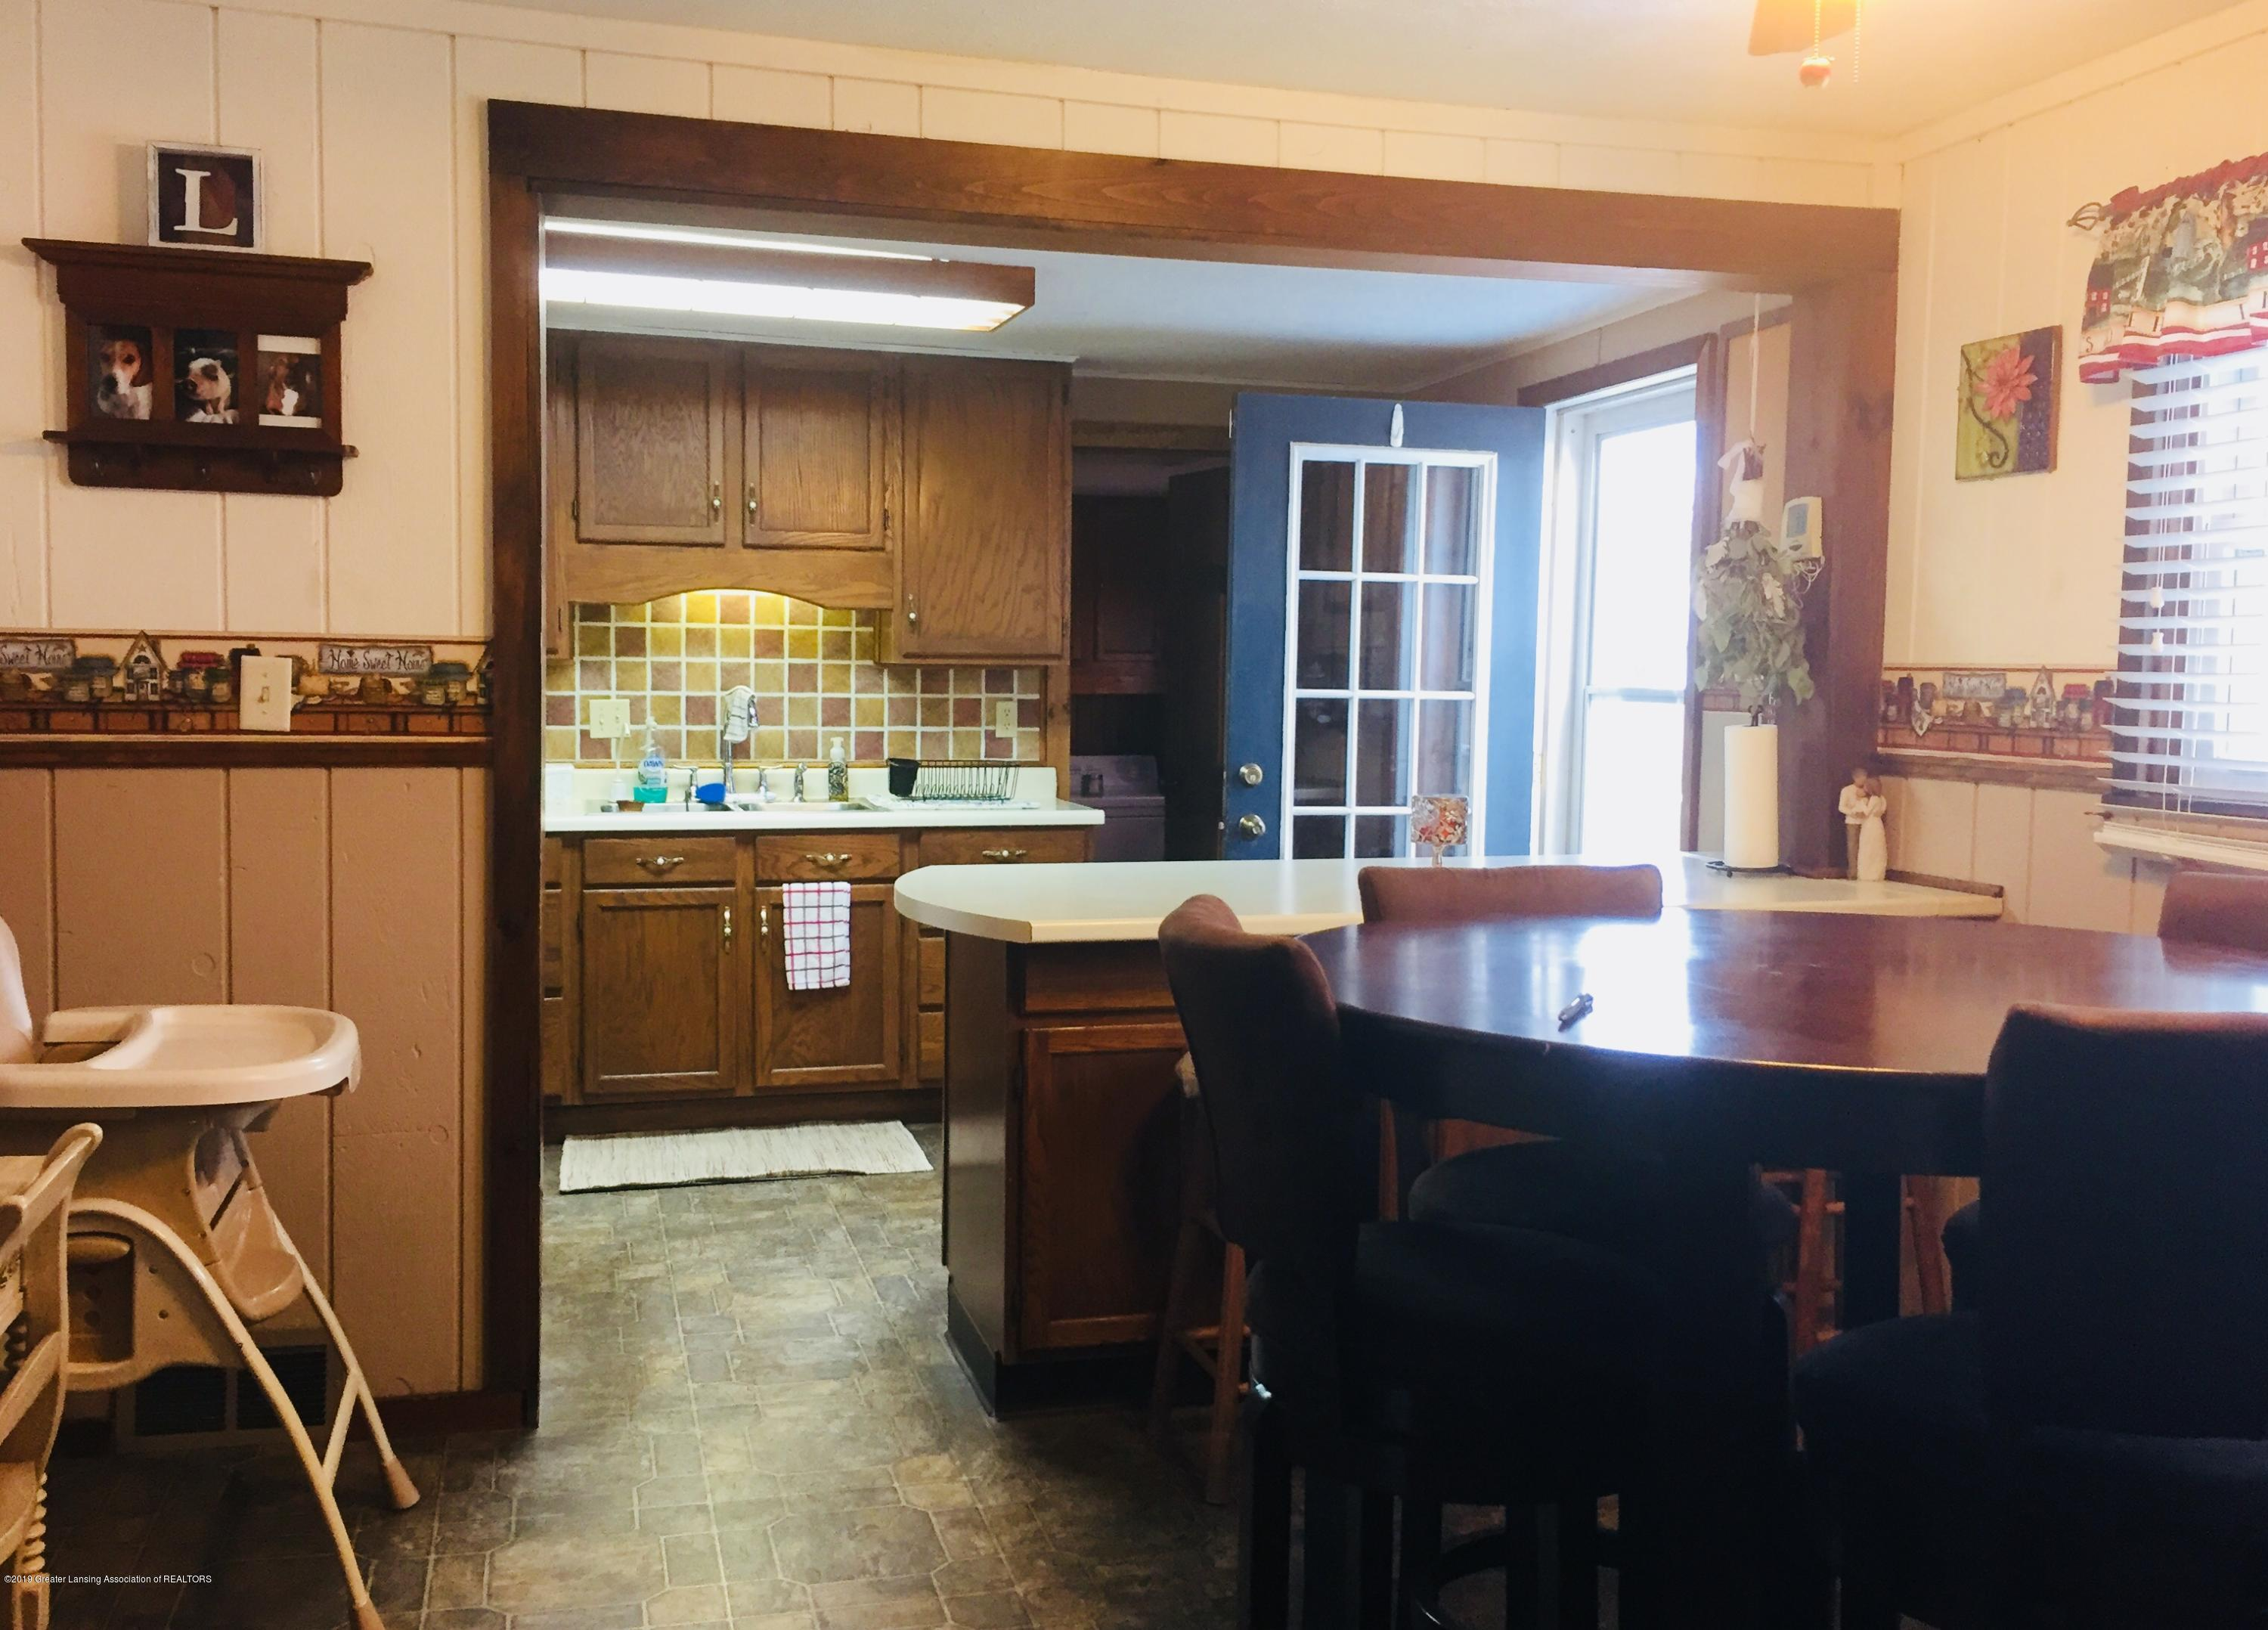 230 Washington St - Dining - kitchen - 7